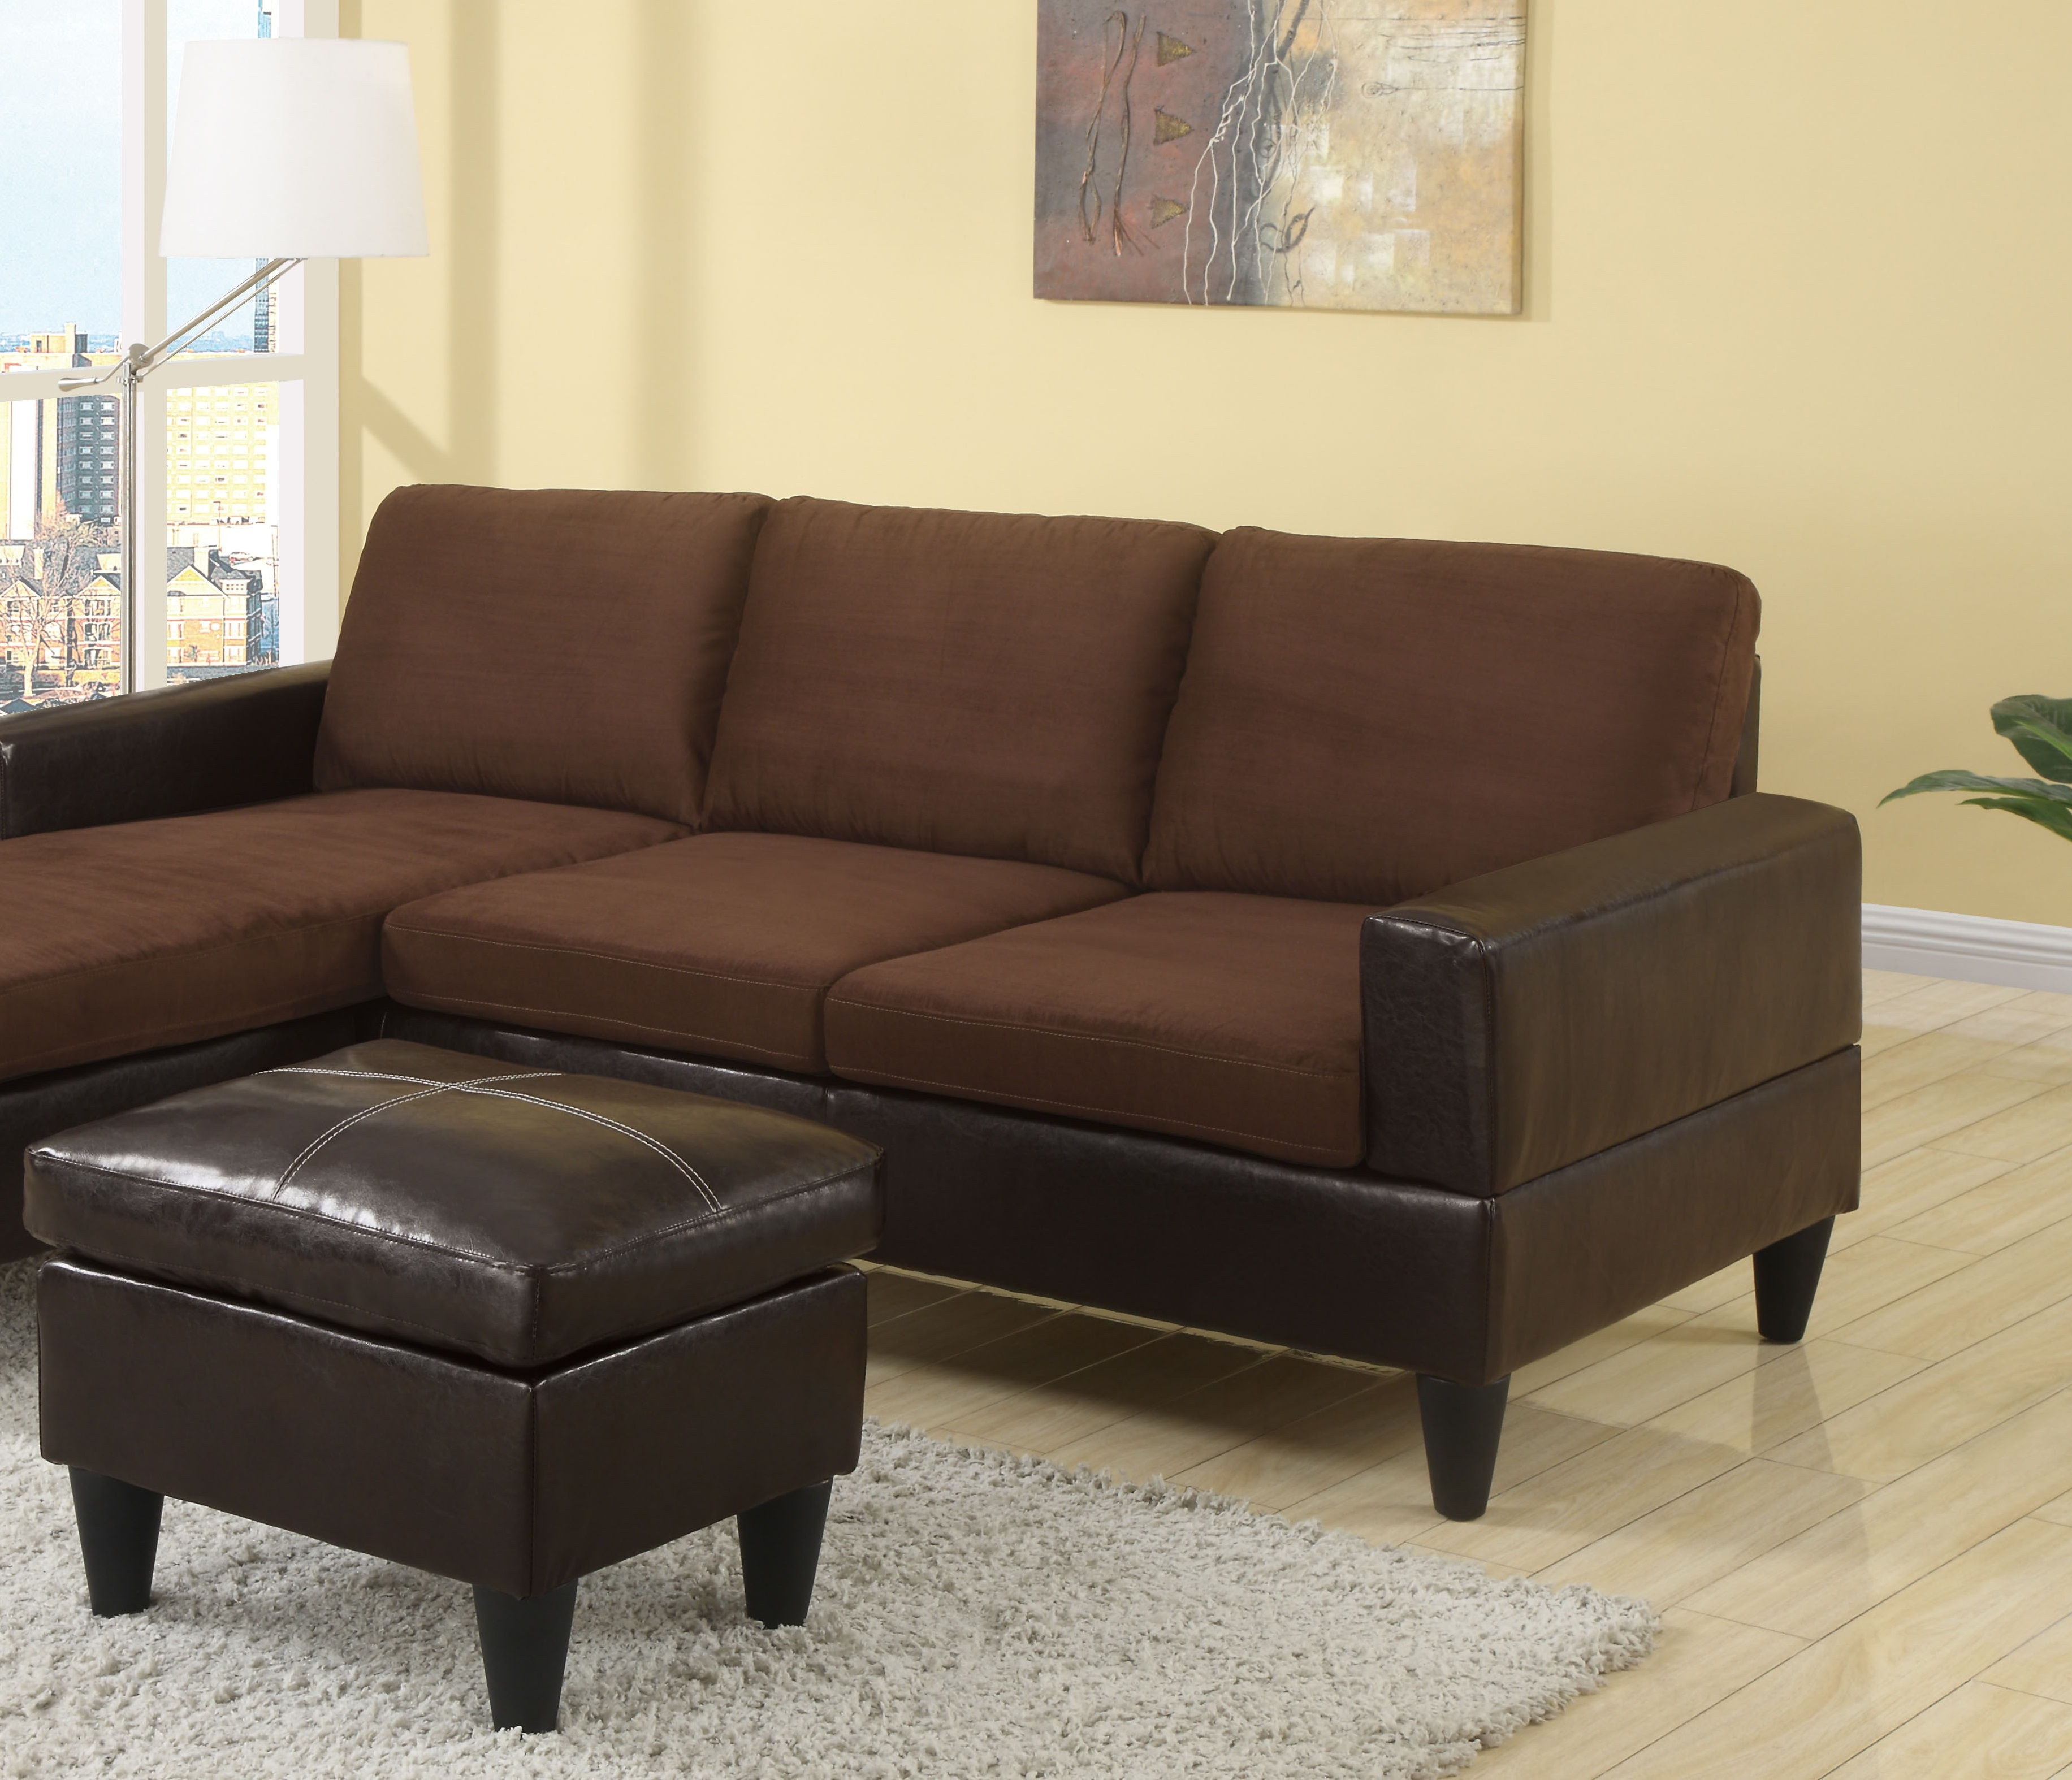 Poundex sectional w free ottoman leather hot sectionals for Bobkona sectional sofa with ottoman